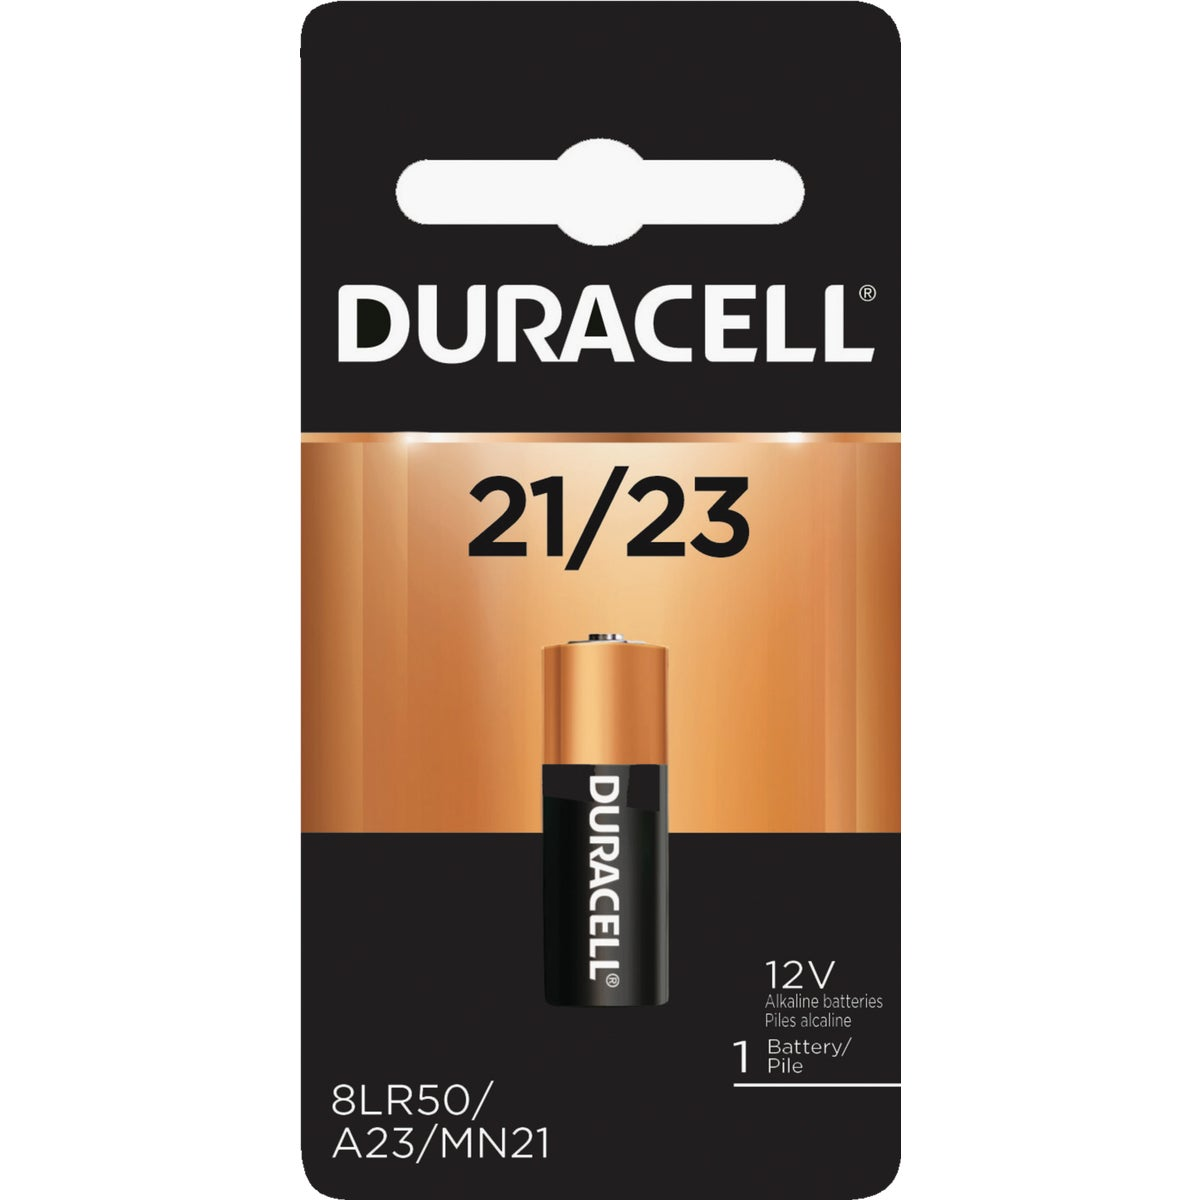 MN21 12V SECUR BATTERY - 29587 by P & G  Duracell